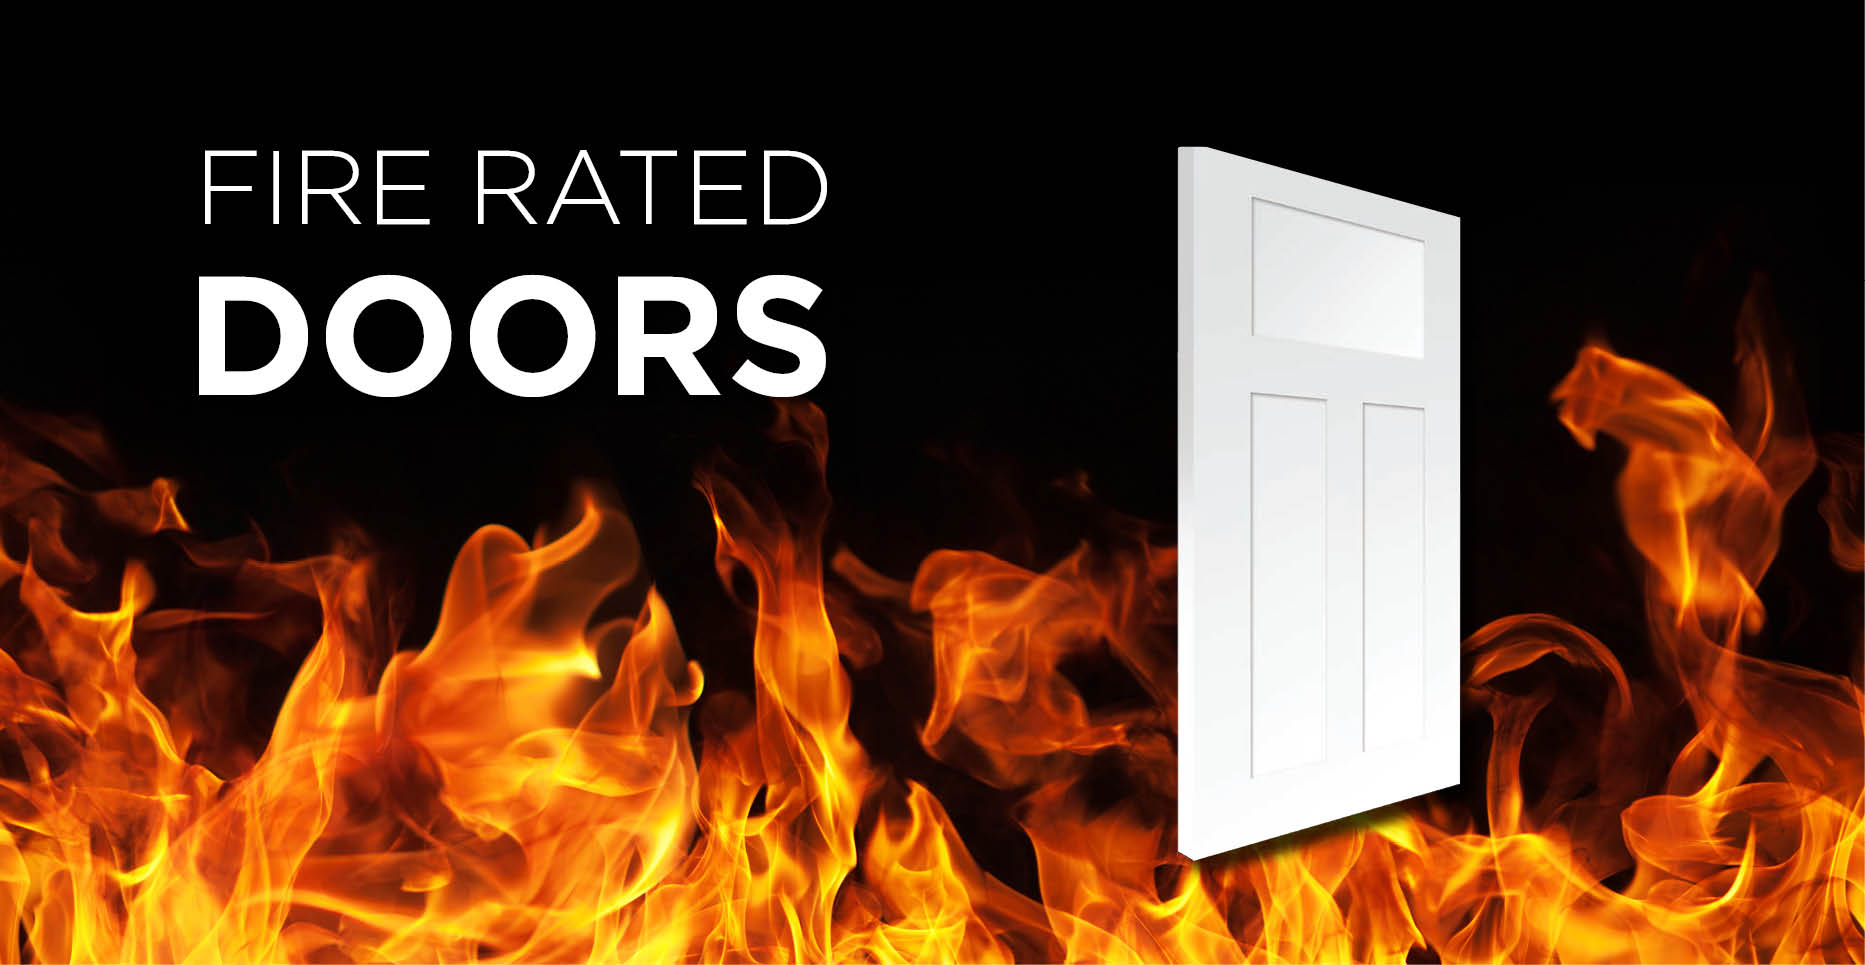 New 20 minute fire rate fiberglass door badger - What is a fire rated door ...